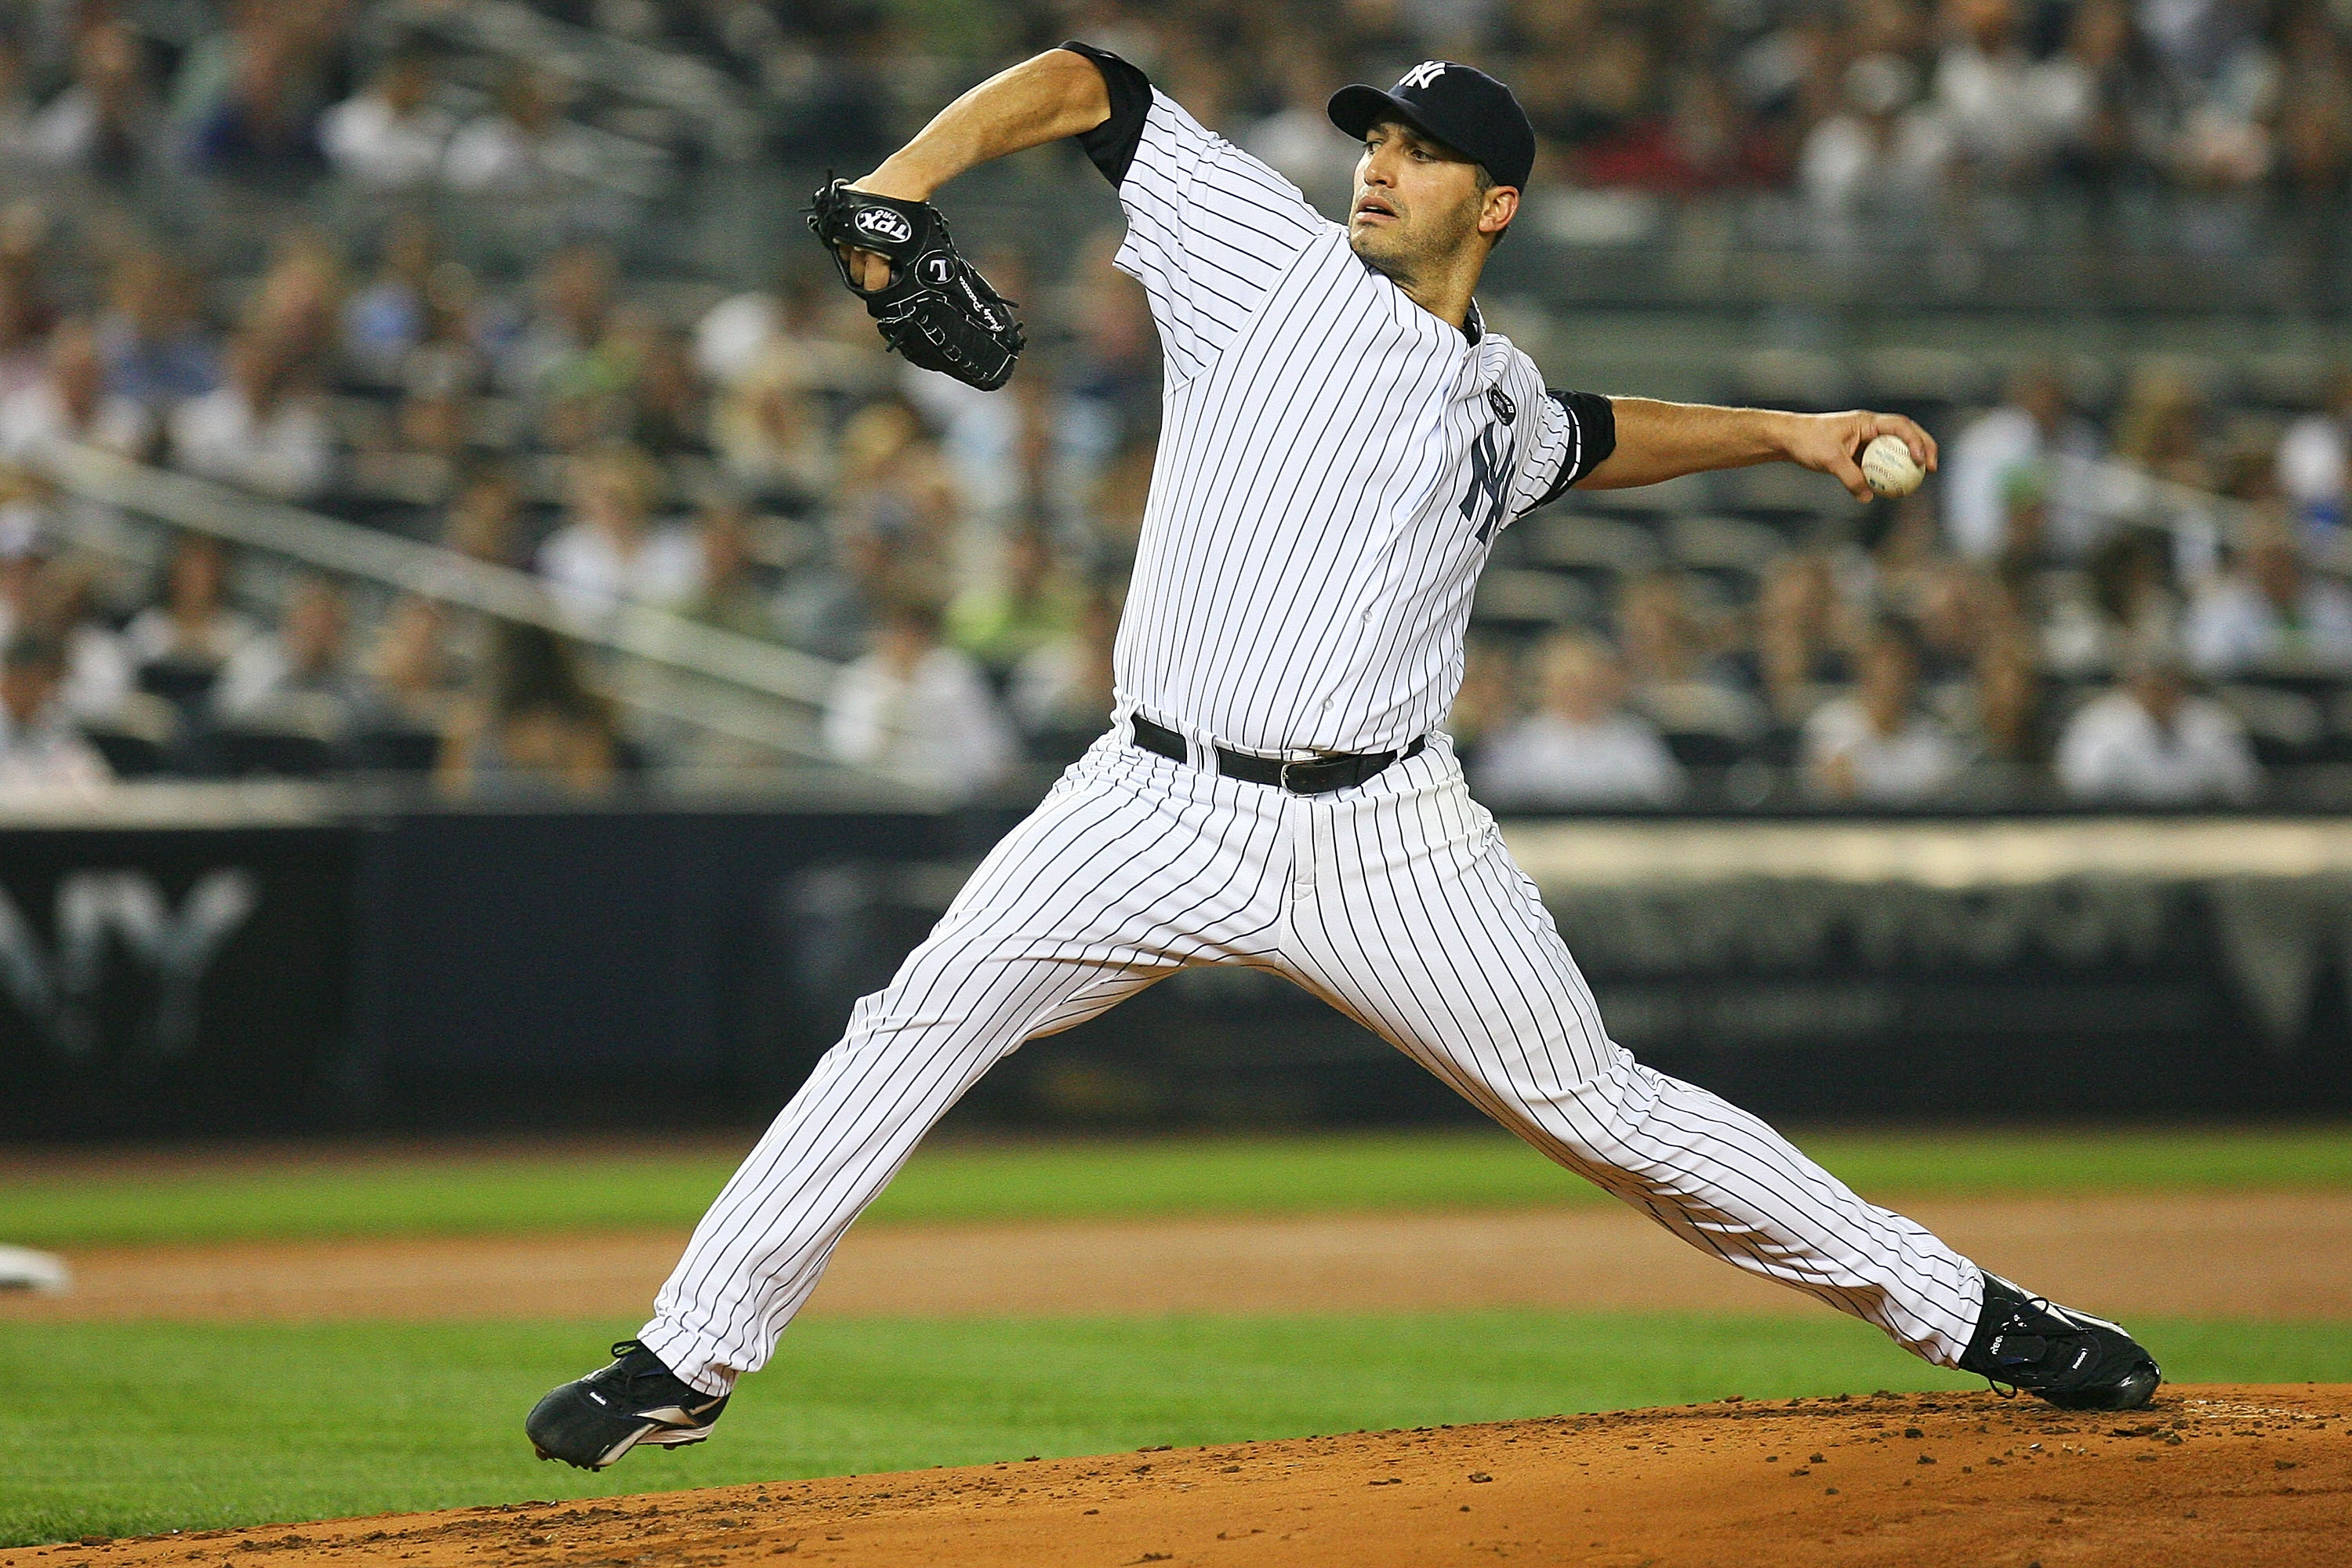 NEW YORK - SEPTEMBER 24:  Andy Pettitte #46 of the New York Yankees pitches against the Boston Red Sox on September 24, 2010 at Yankee Stadium in the Bronx borough of New York City.  (Photo by Andrew Burton/Getty Images)